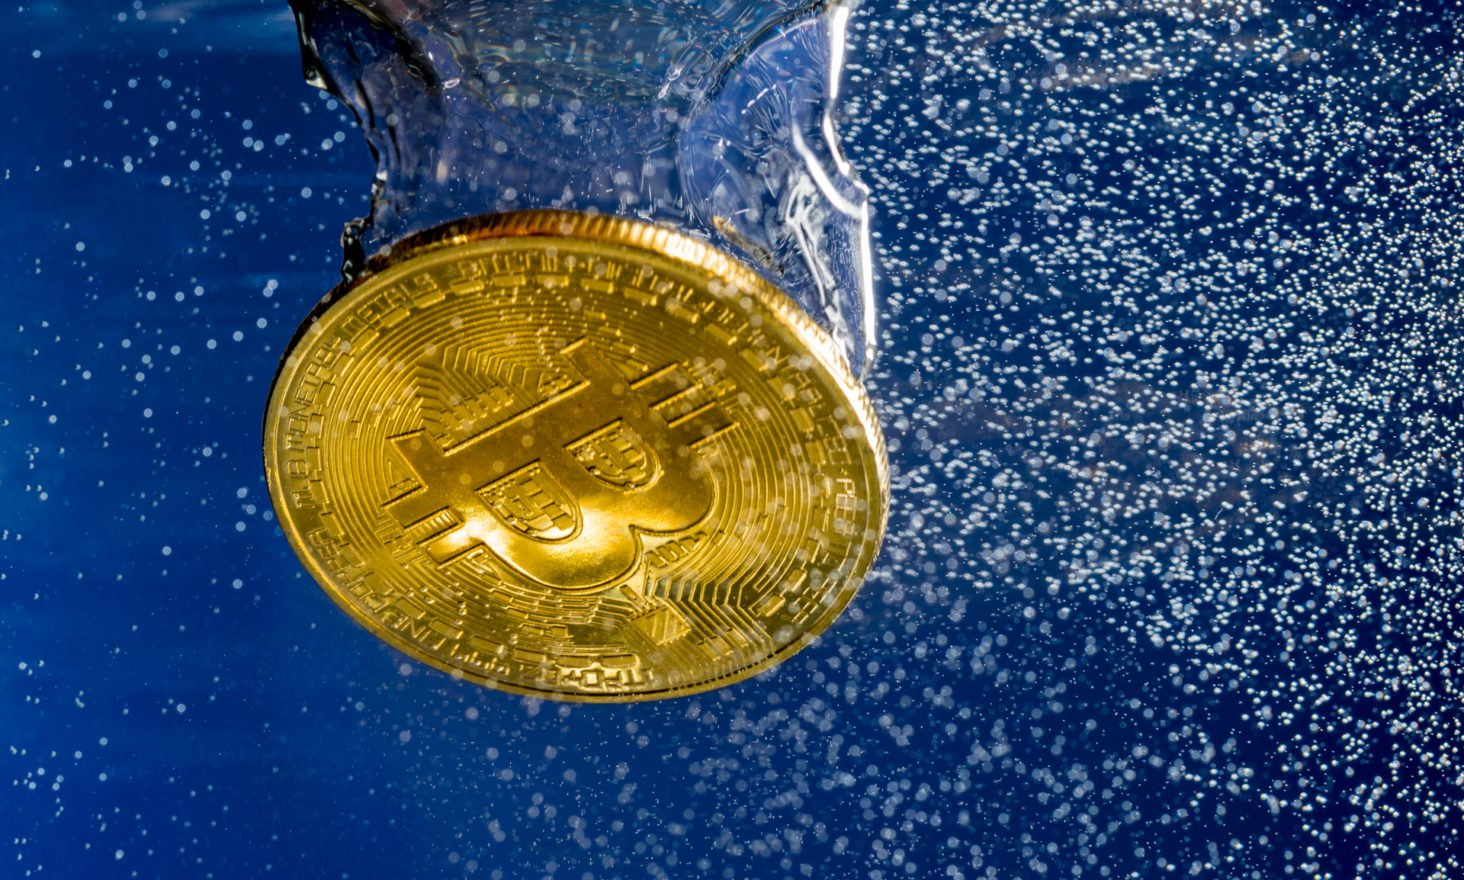 Bitcoin fees transaction fees water